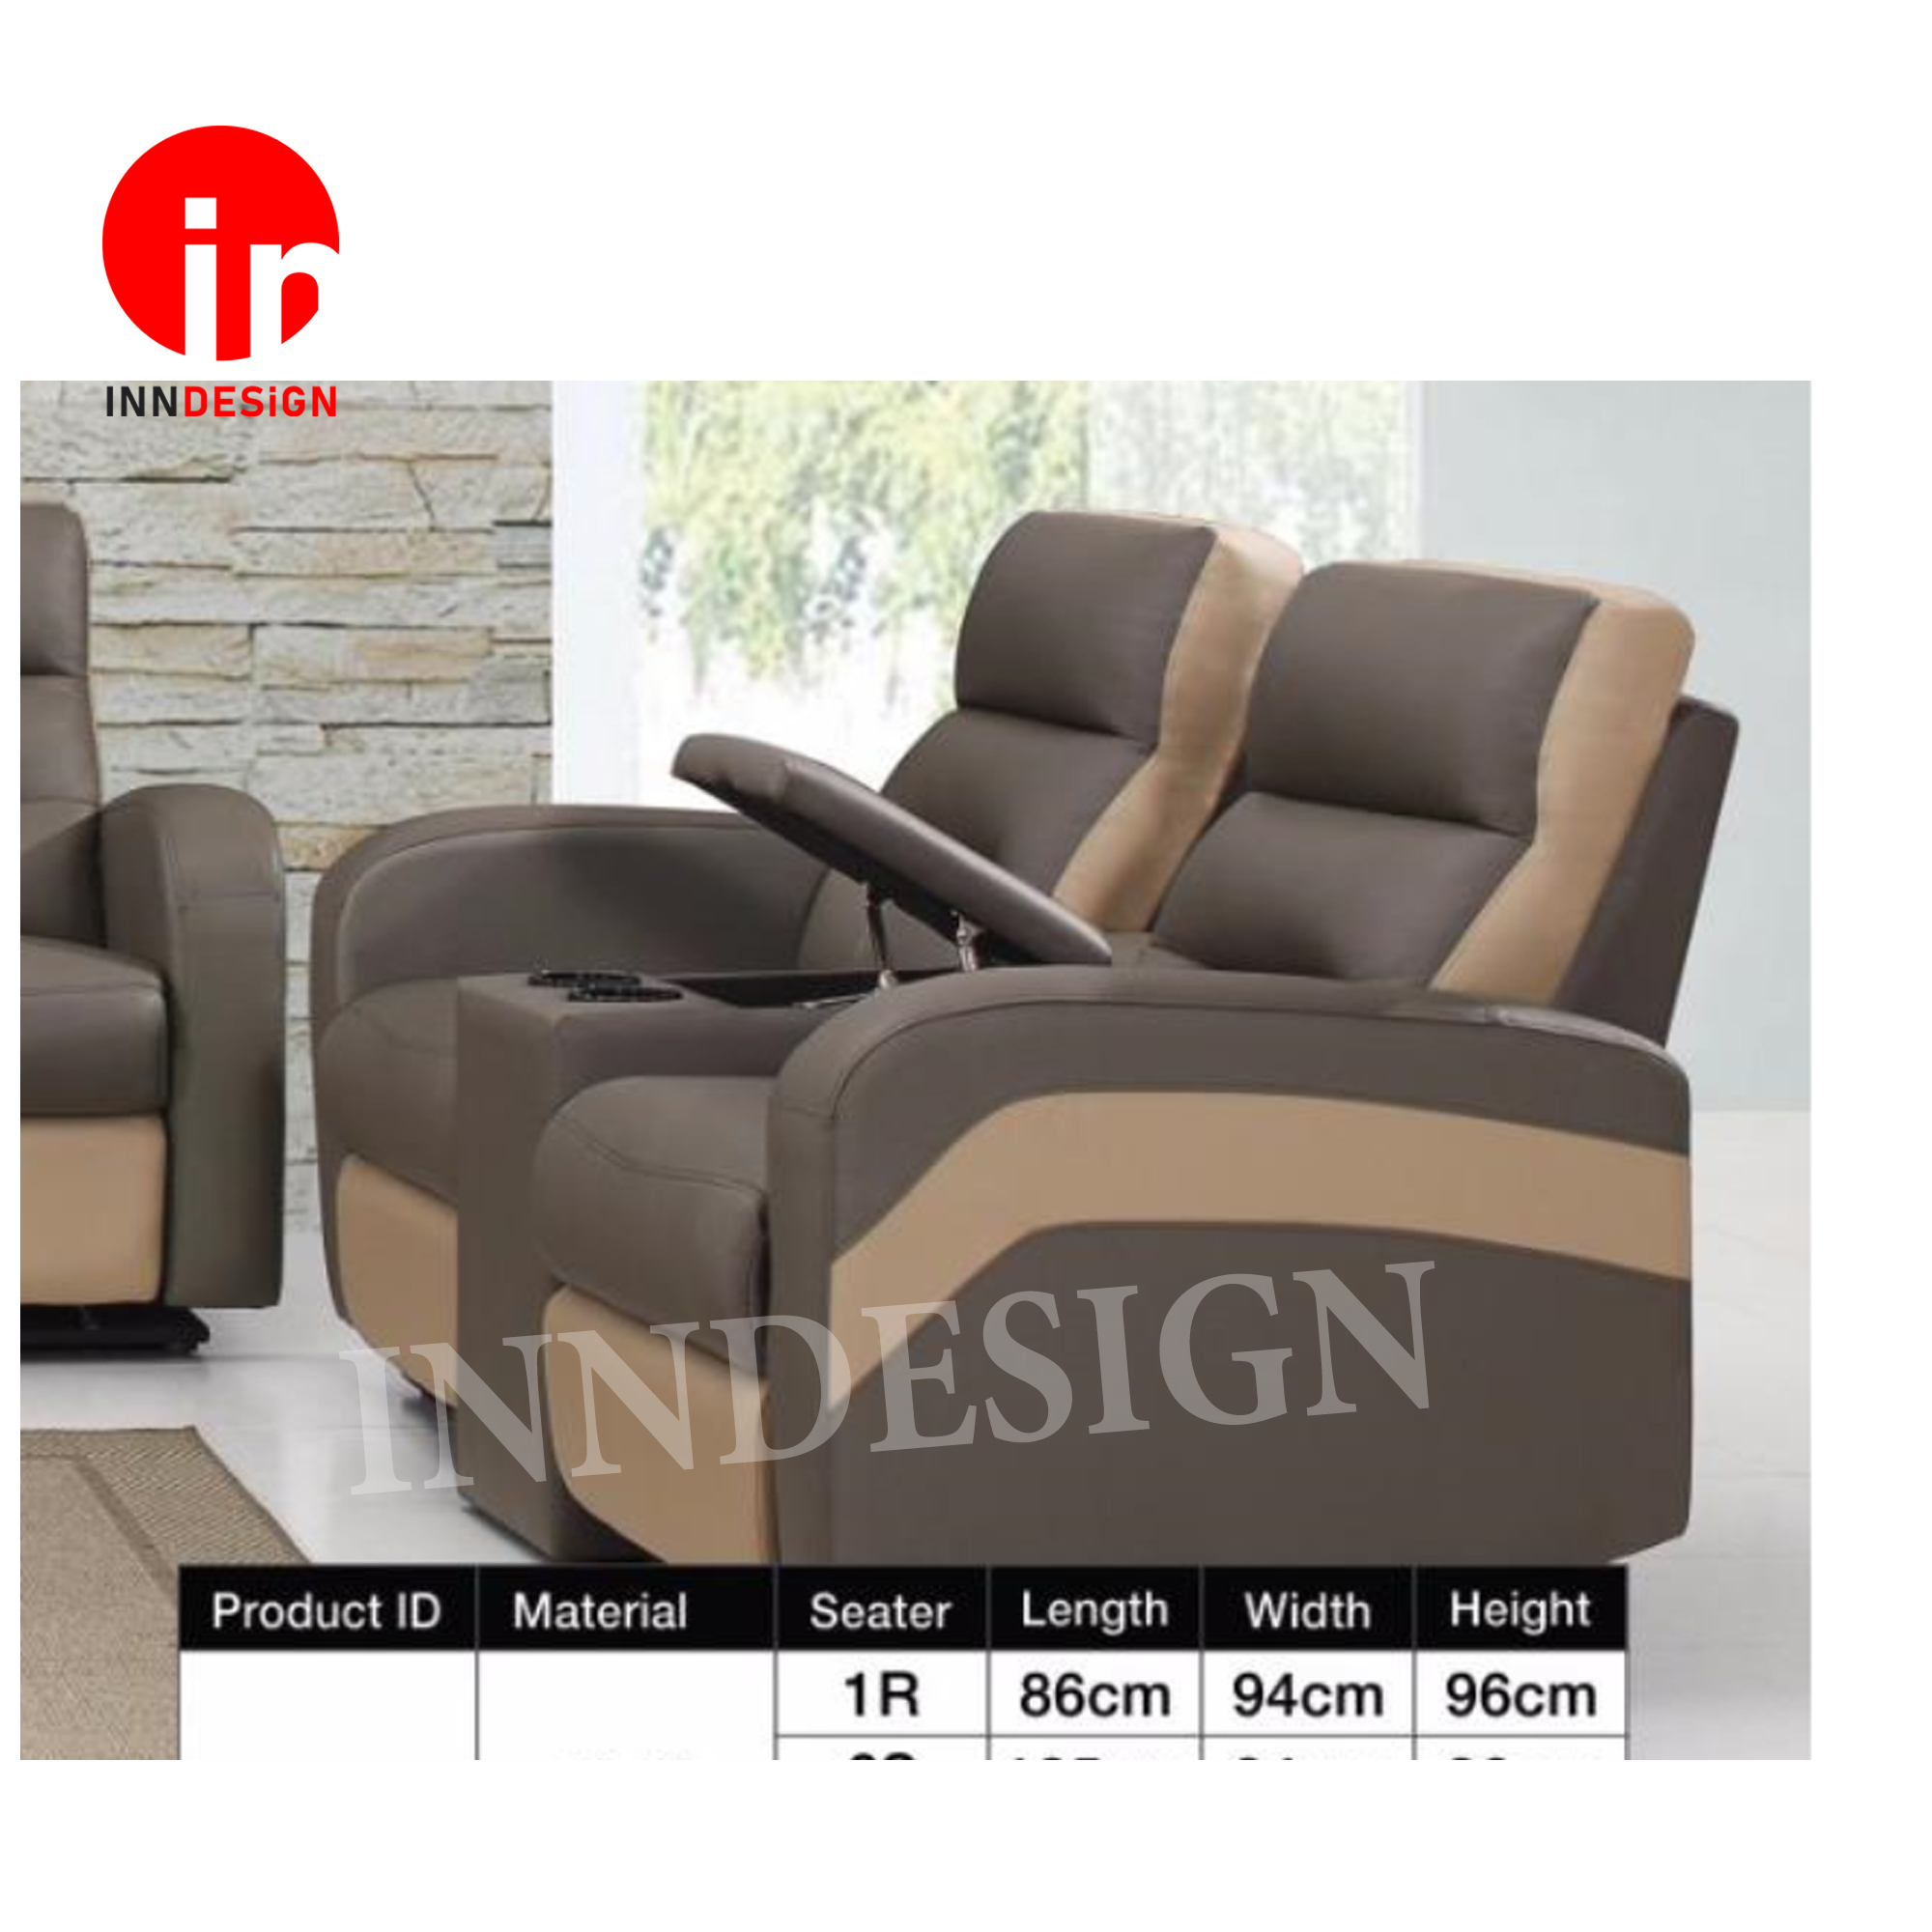 MIKO 2RR Seaters Half Leather Sofa With Recliner